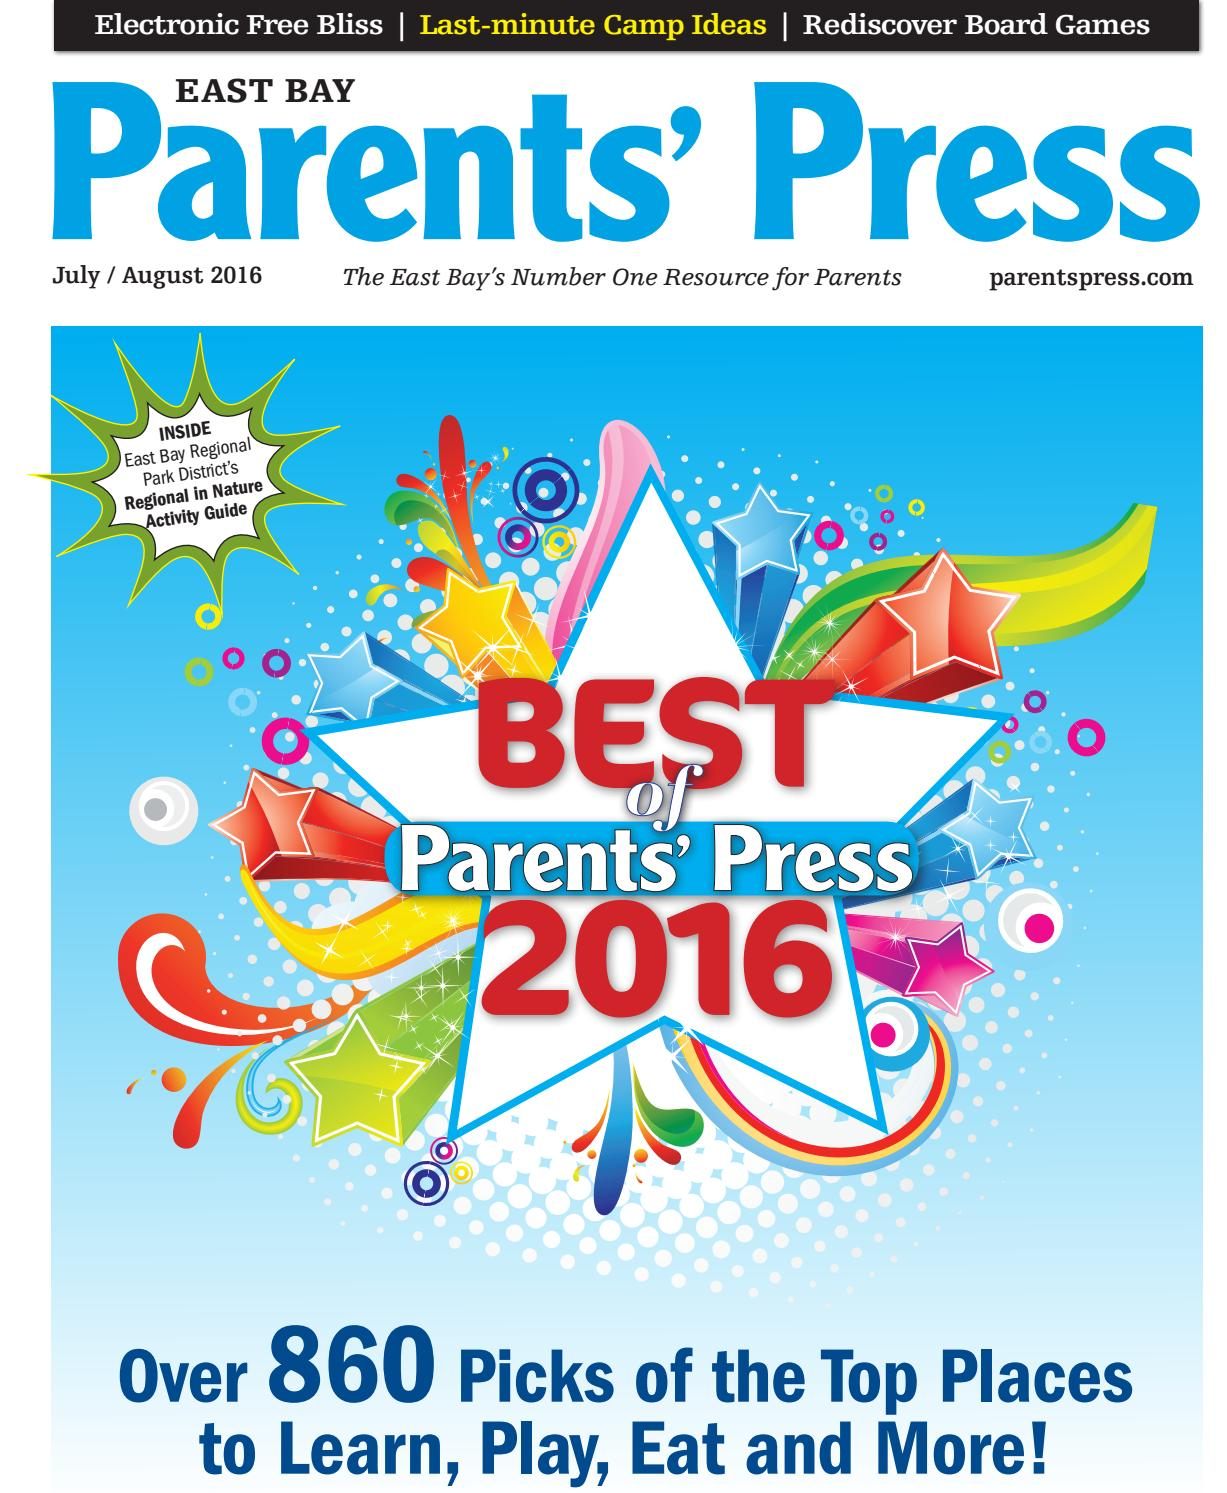 Parents Press July 2016 East Bay by Parenting Media - issuu